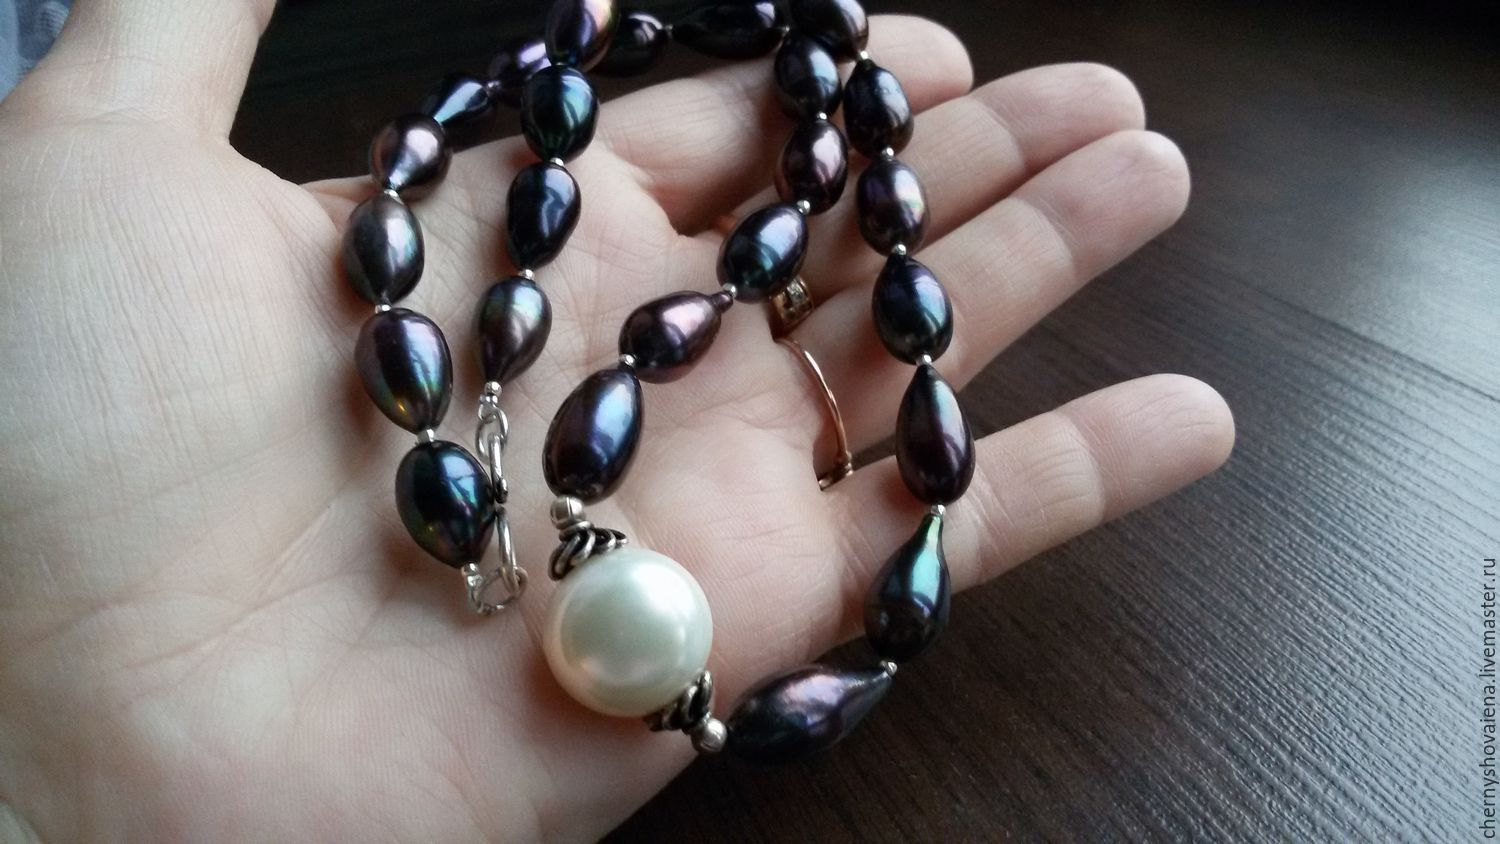 boho cultured jewelry st design black island tahitian gypsea bracelet pearls leathered beach stunning bohemian product barth